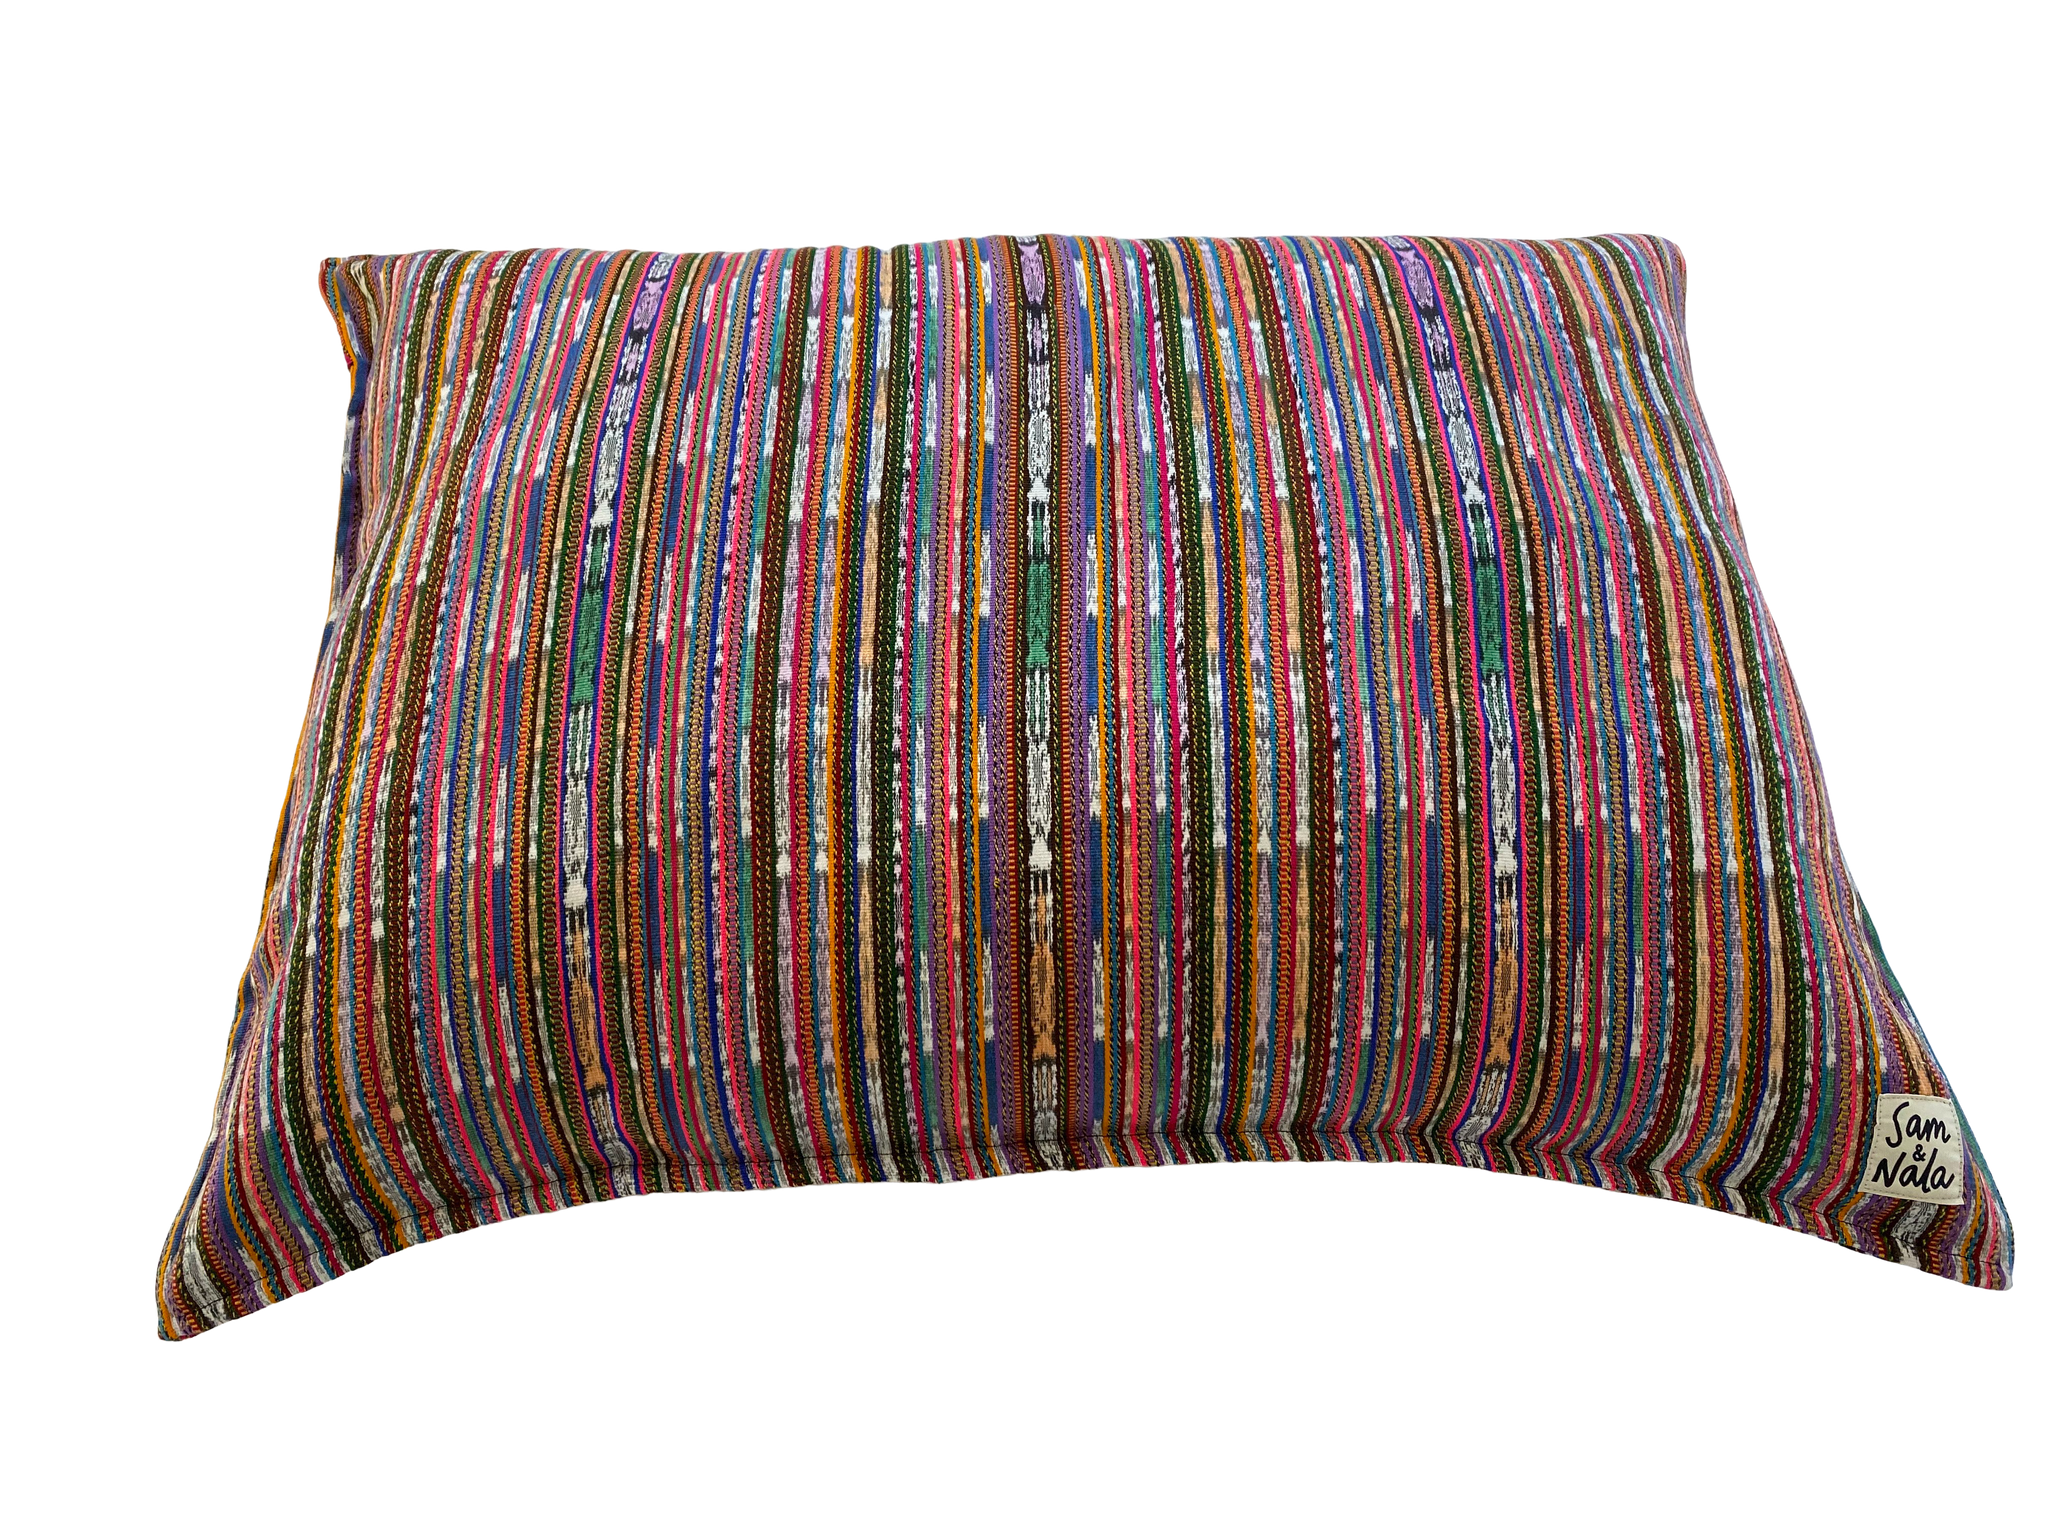 Rainbow Medium Dog Bed-One of a Kind (#211)